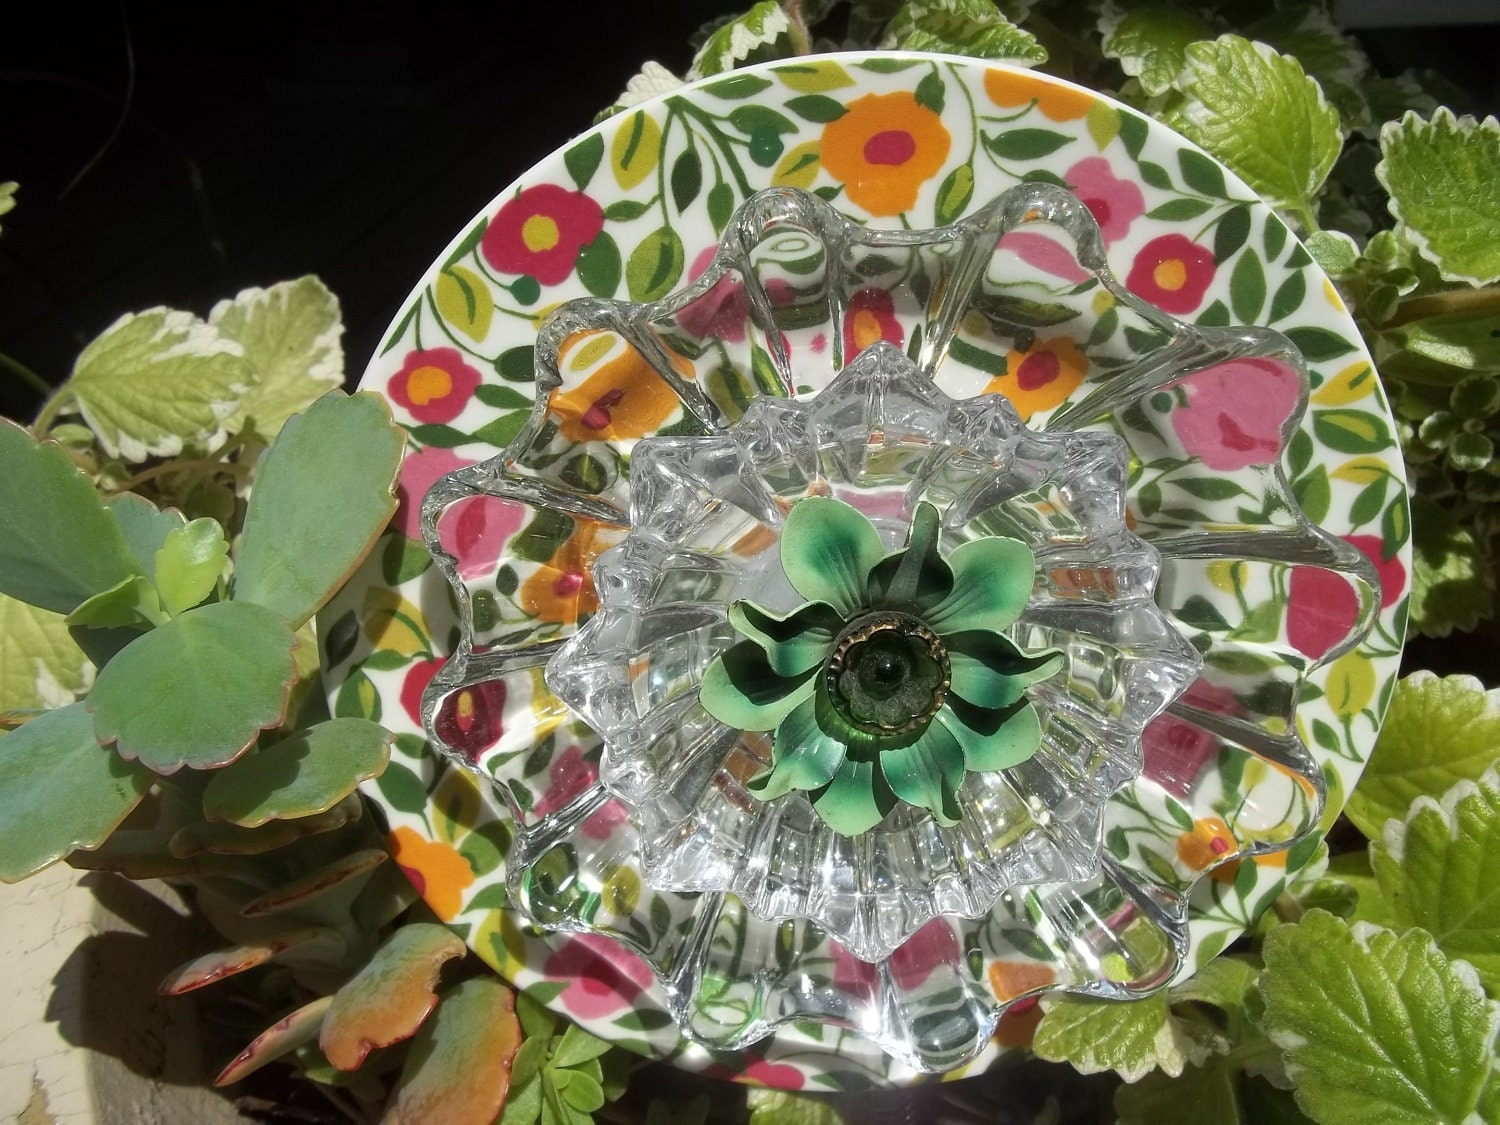 Recycled garden yard art glass flower claudia for Recycled glass flowers